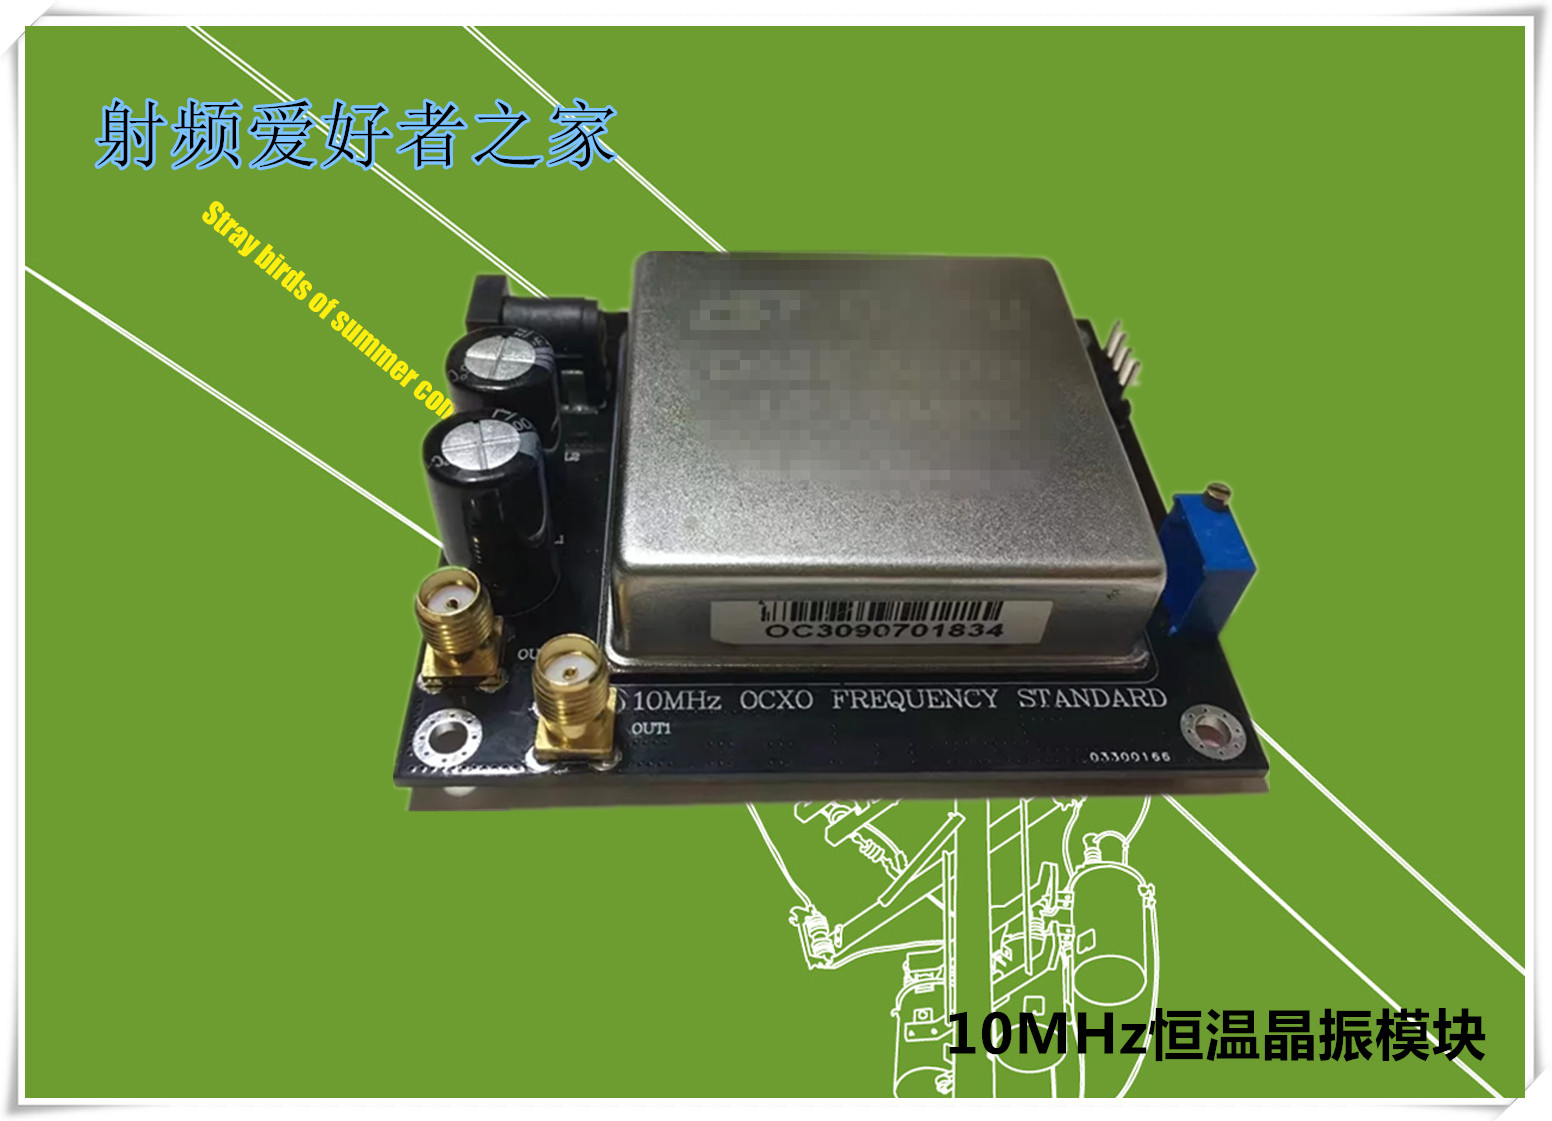 High Stability New Version of 10MHz OCXO Constant Temperature Crystal Oscillator Clock Frequency ReferenceHigh Stability New Version of 10MHz OCXO Constant Temperature Crystal Oscillator Clock Frequency Reference